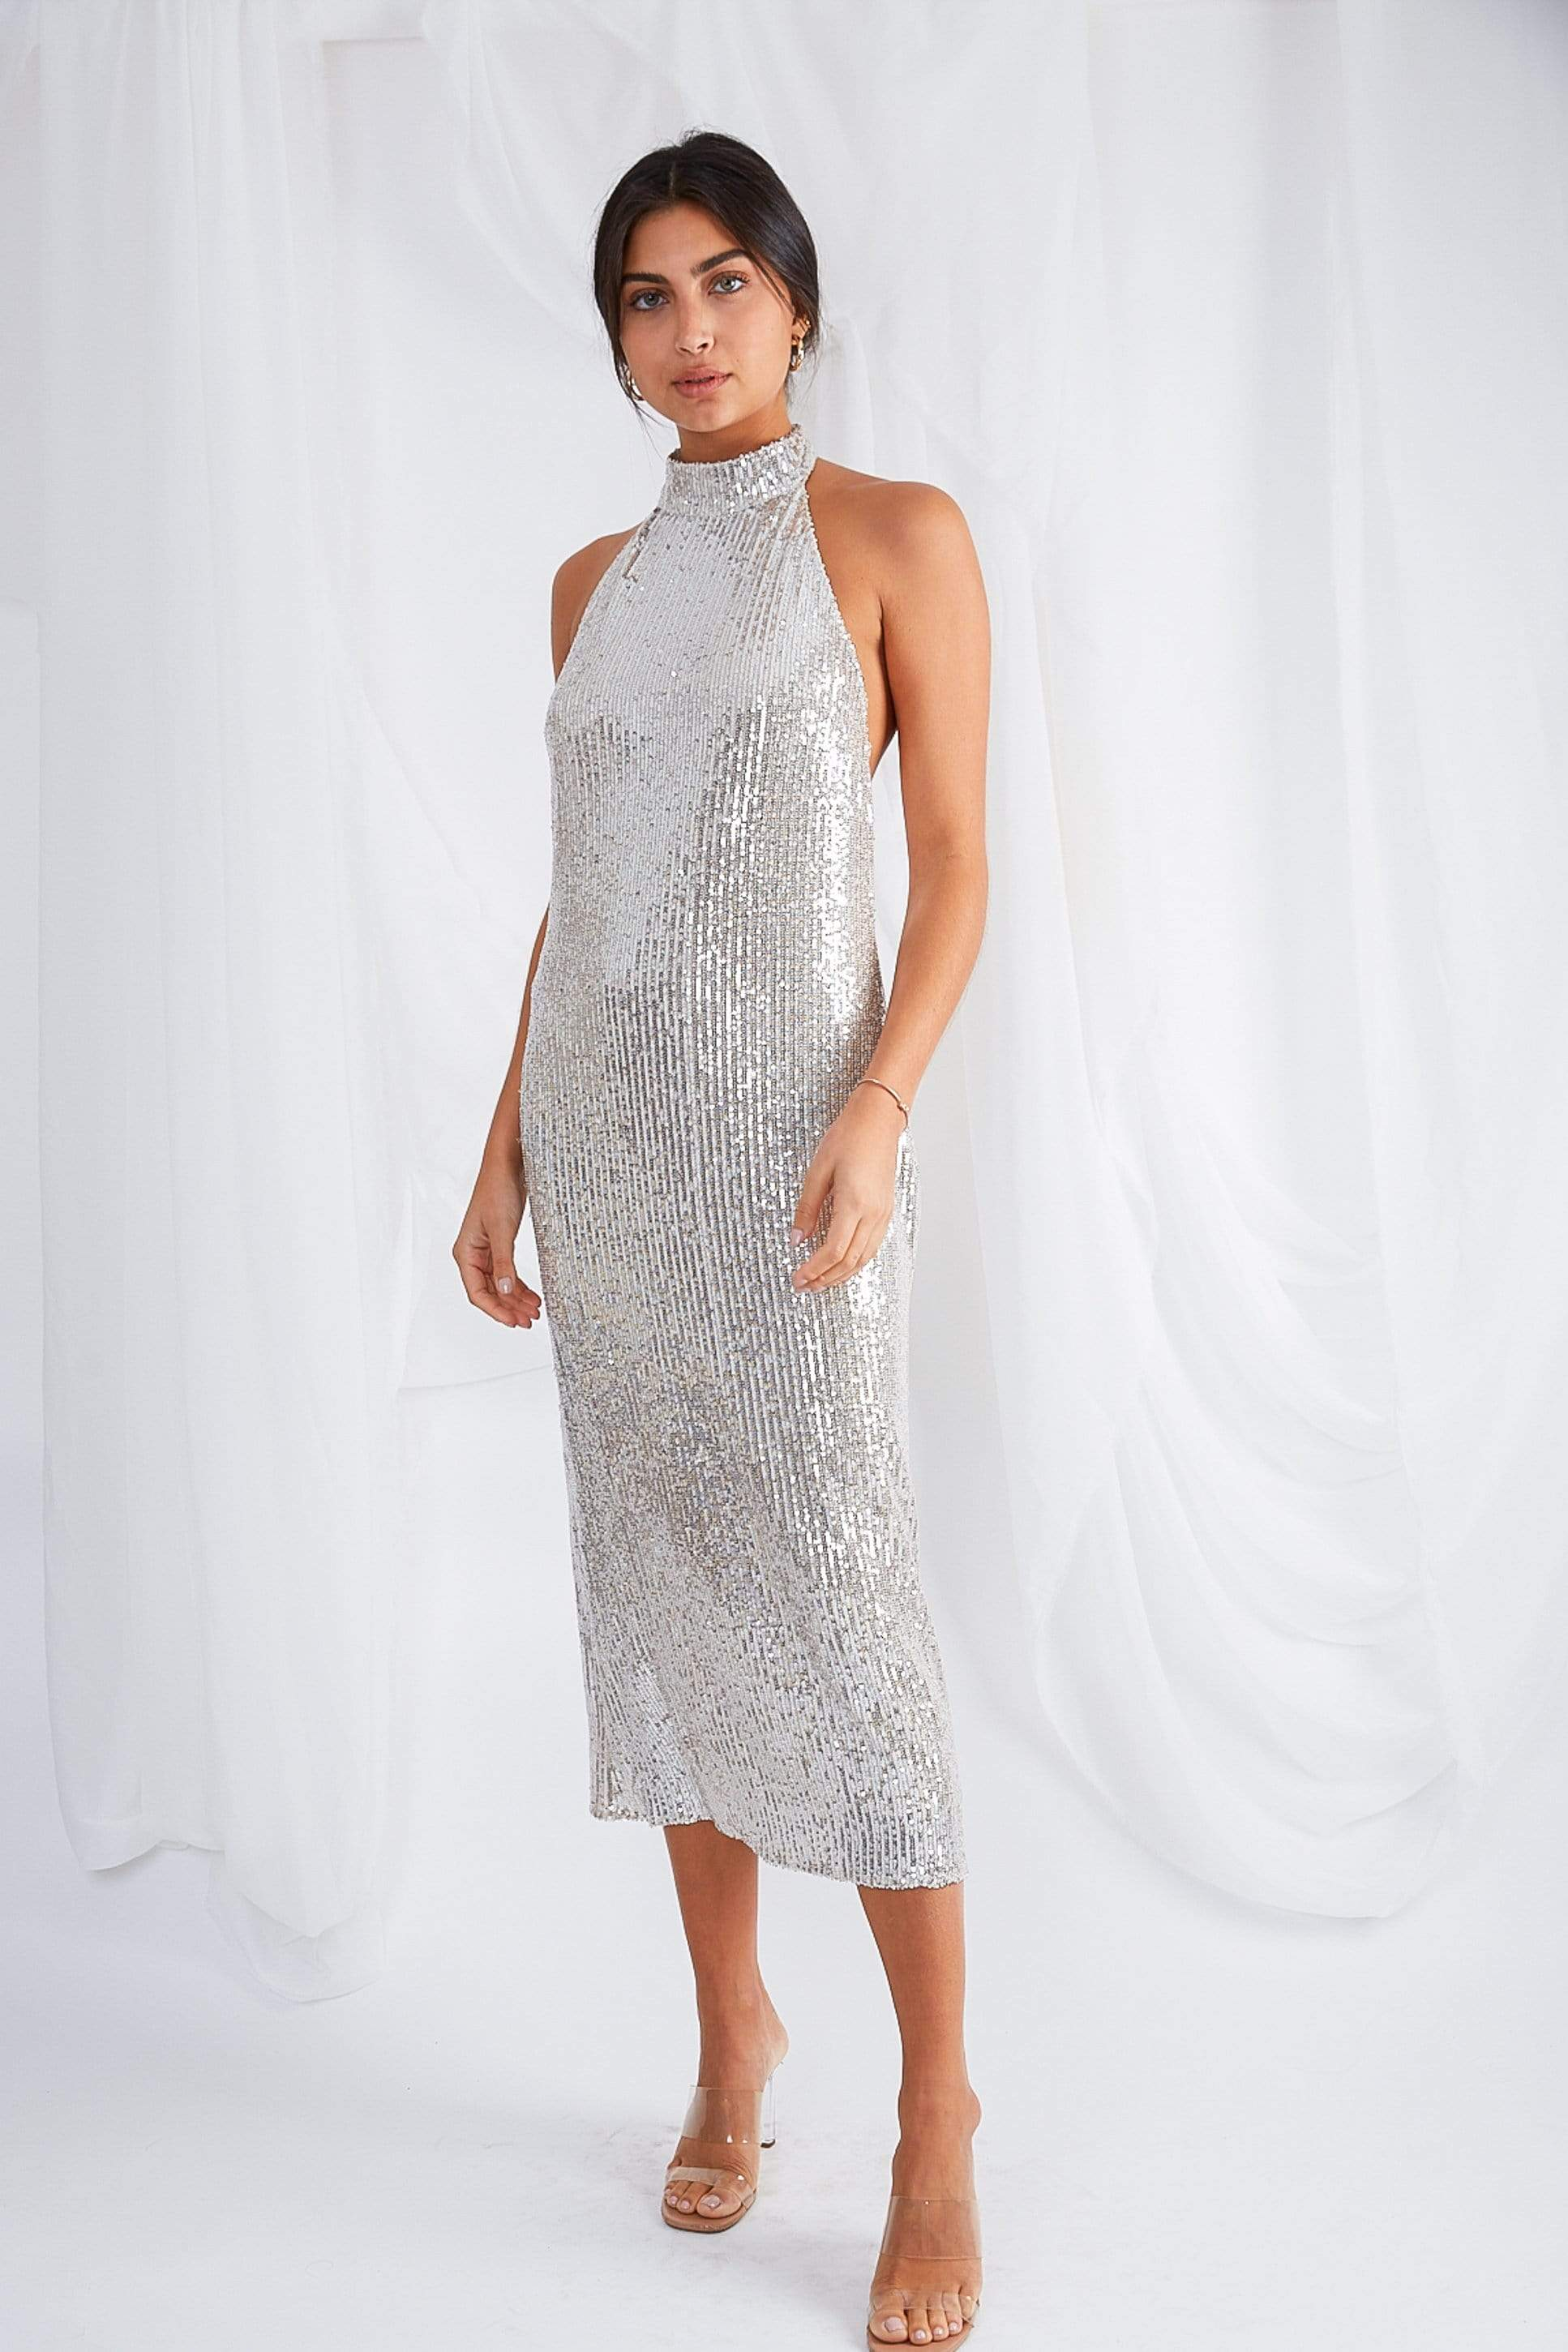 Raleigh Halterneck Dress - Sequin, Dress - Pretty Lavish